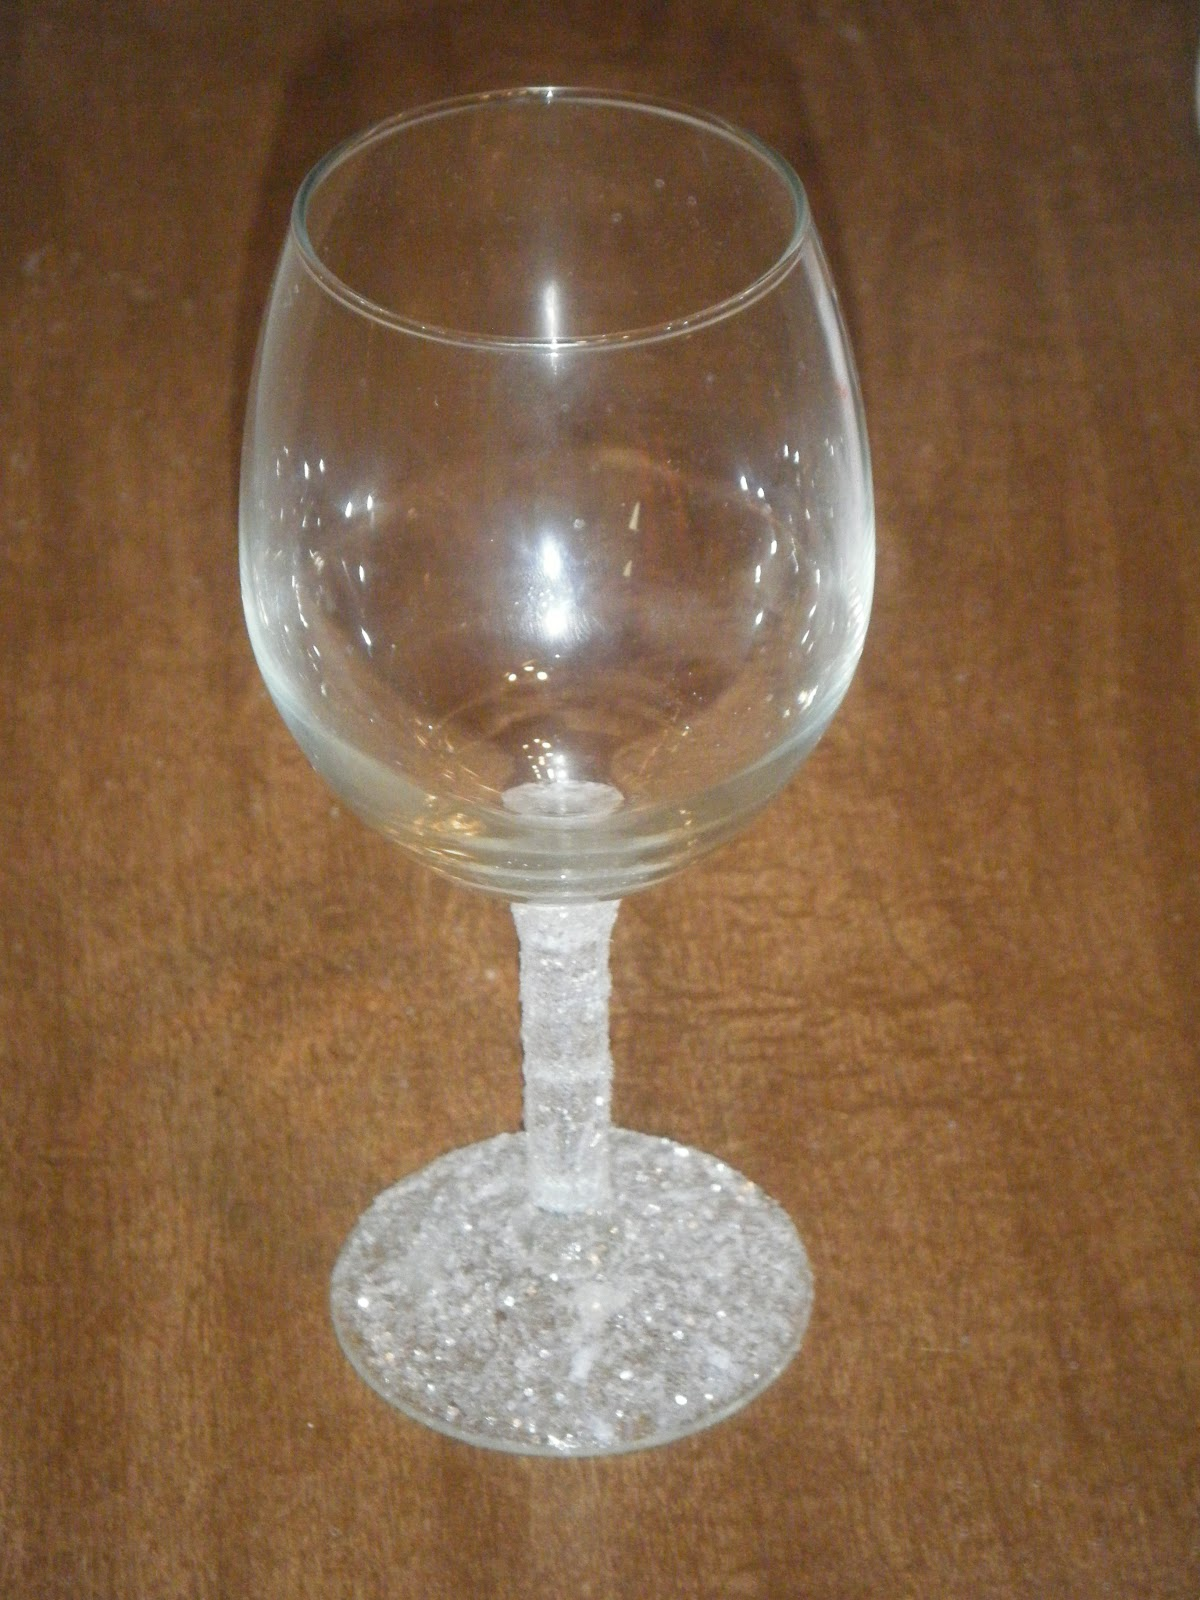 Diy doing it myself glitter stem wine glass How to make wine glasses sparkle